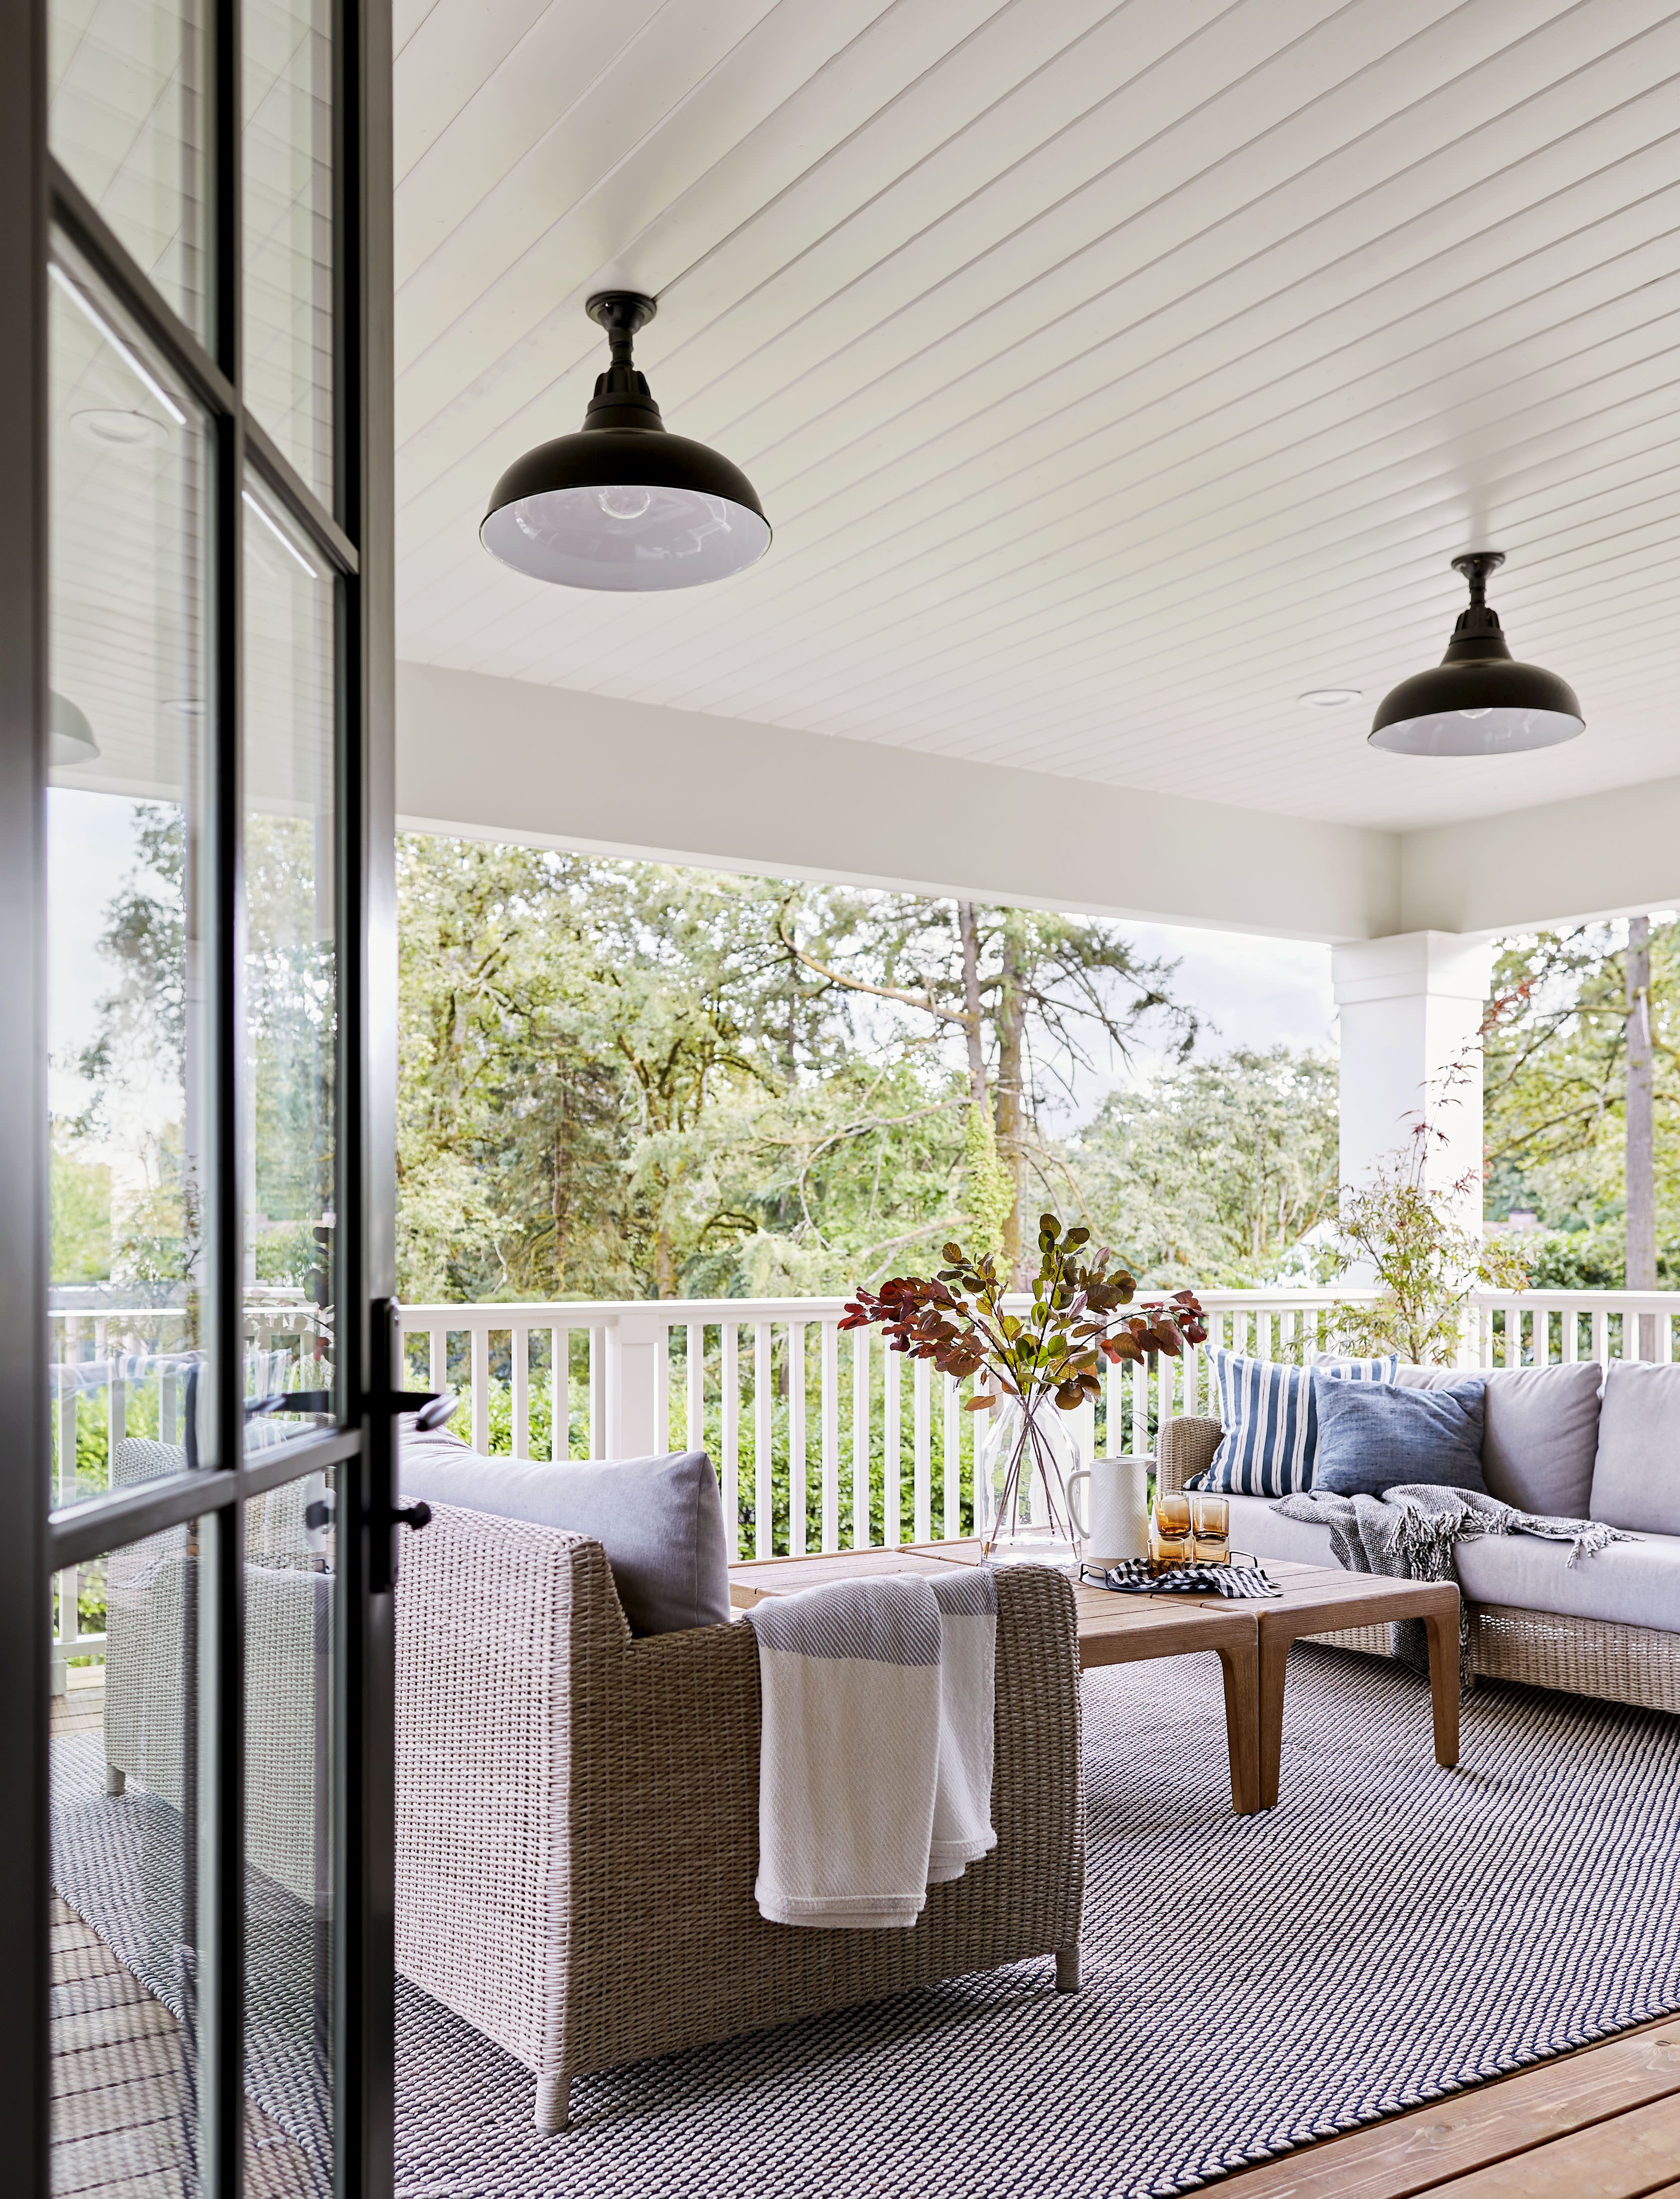 All The Ideas Inspiration You Need To Decorate Your Patio And Deck Outdoor Rooms Small Apartment Balcony Ideas Outdoor Living Rooms